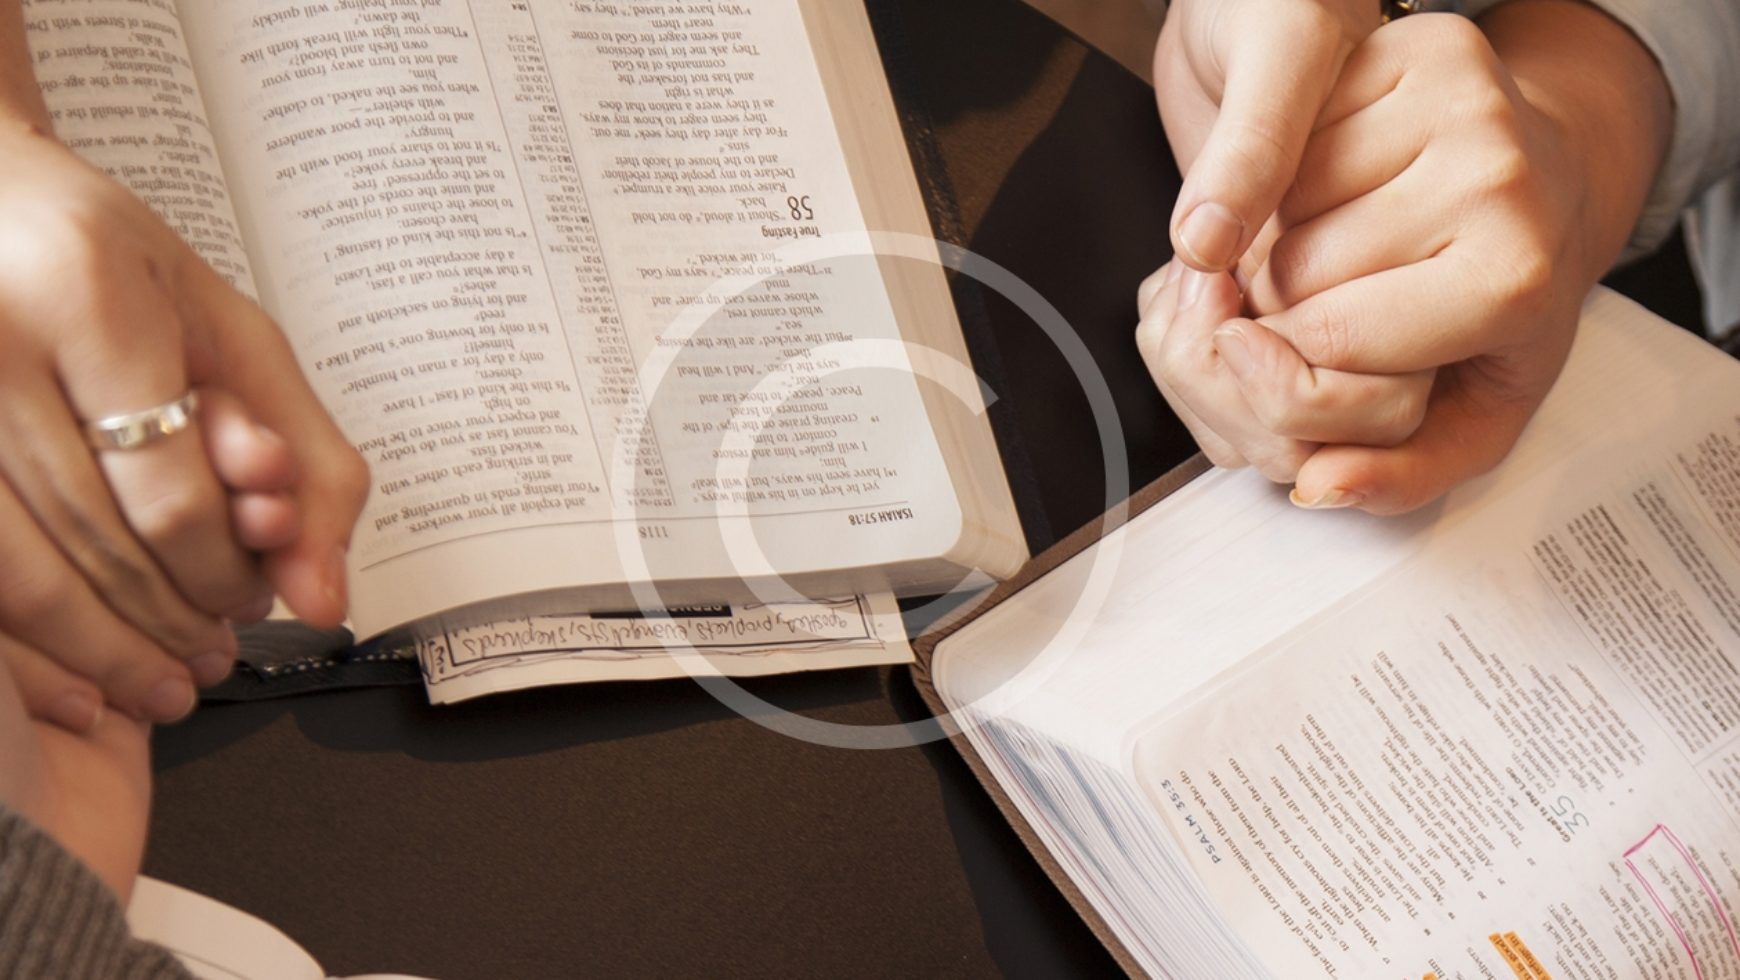 The Meanings of Love in the Bible